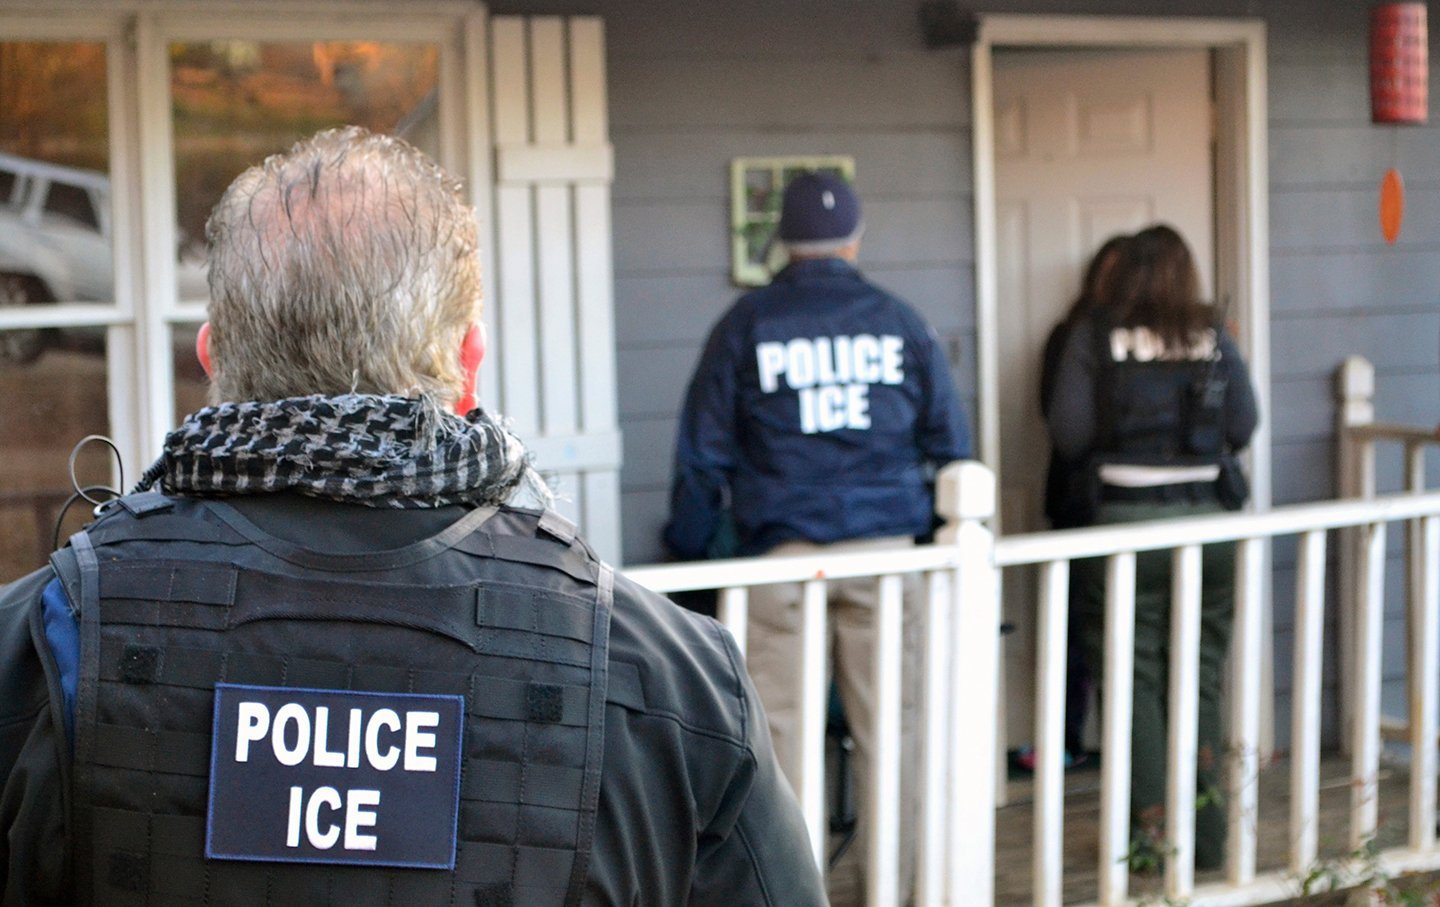 CA Bay Area Poll Majorities Across All Races Want Local Police to Help ICE Detain Illegals